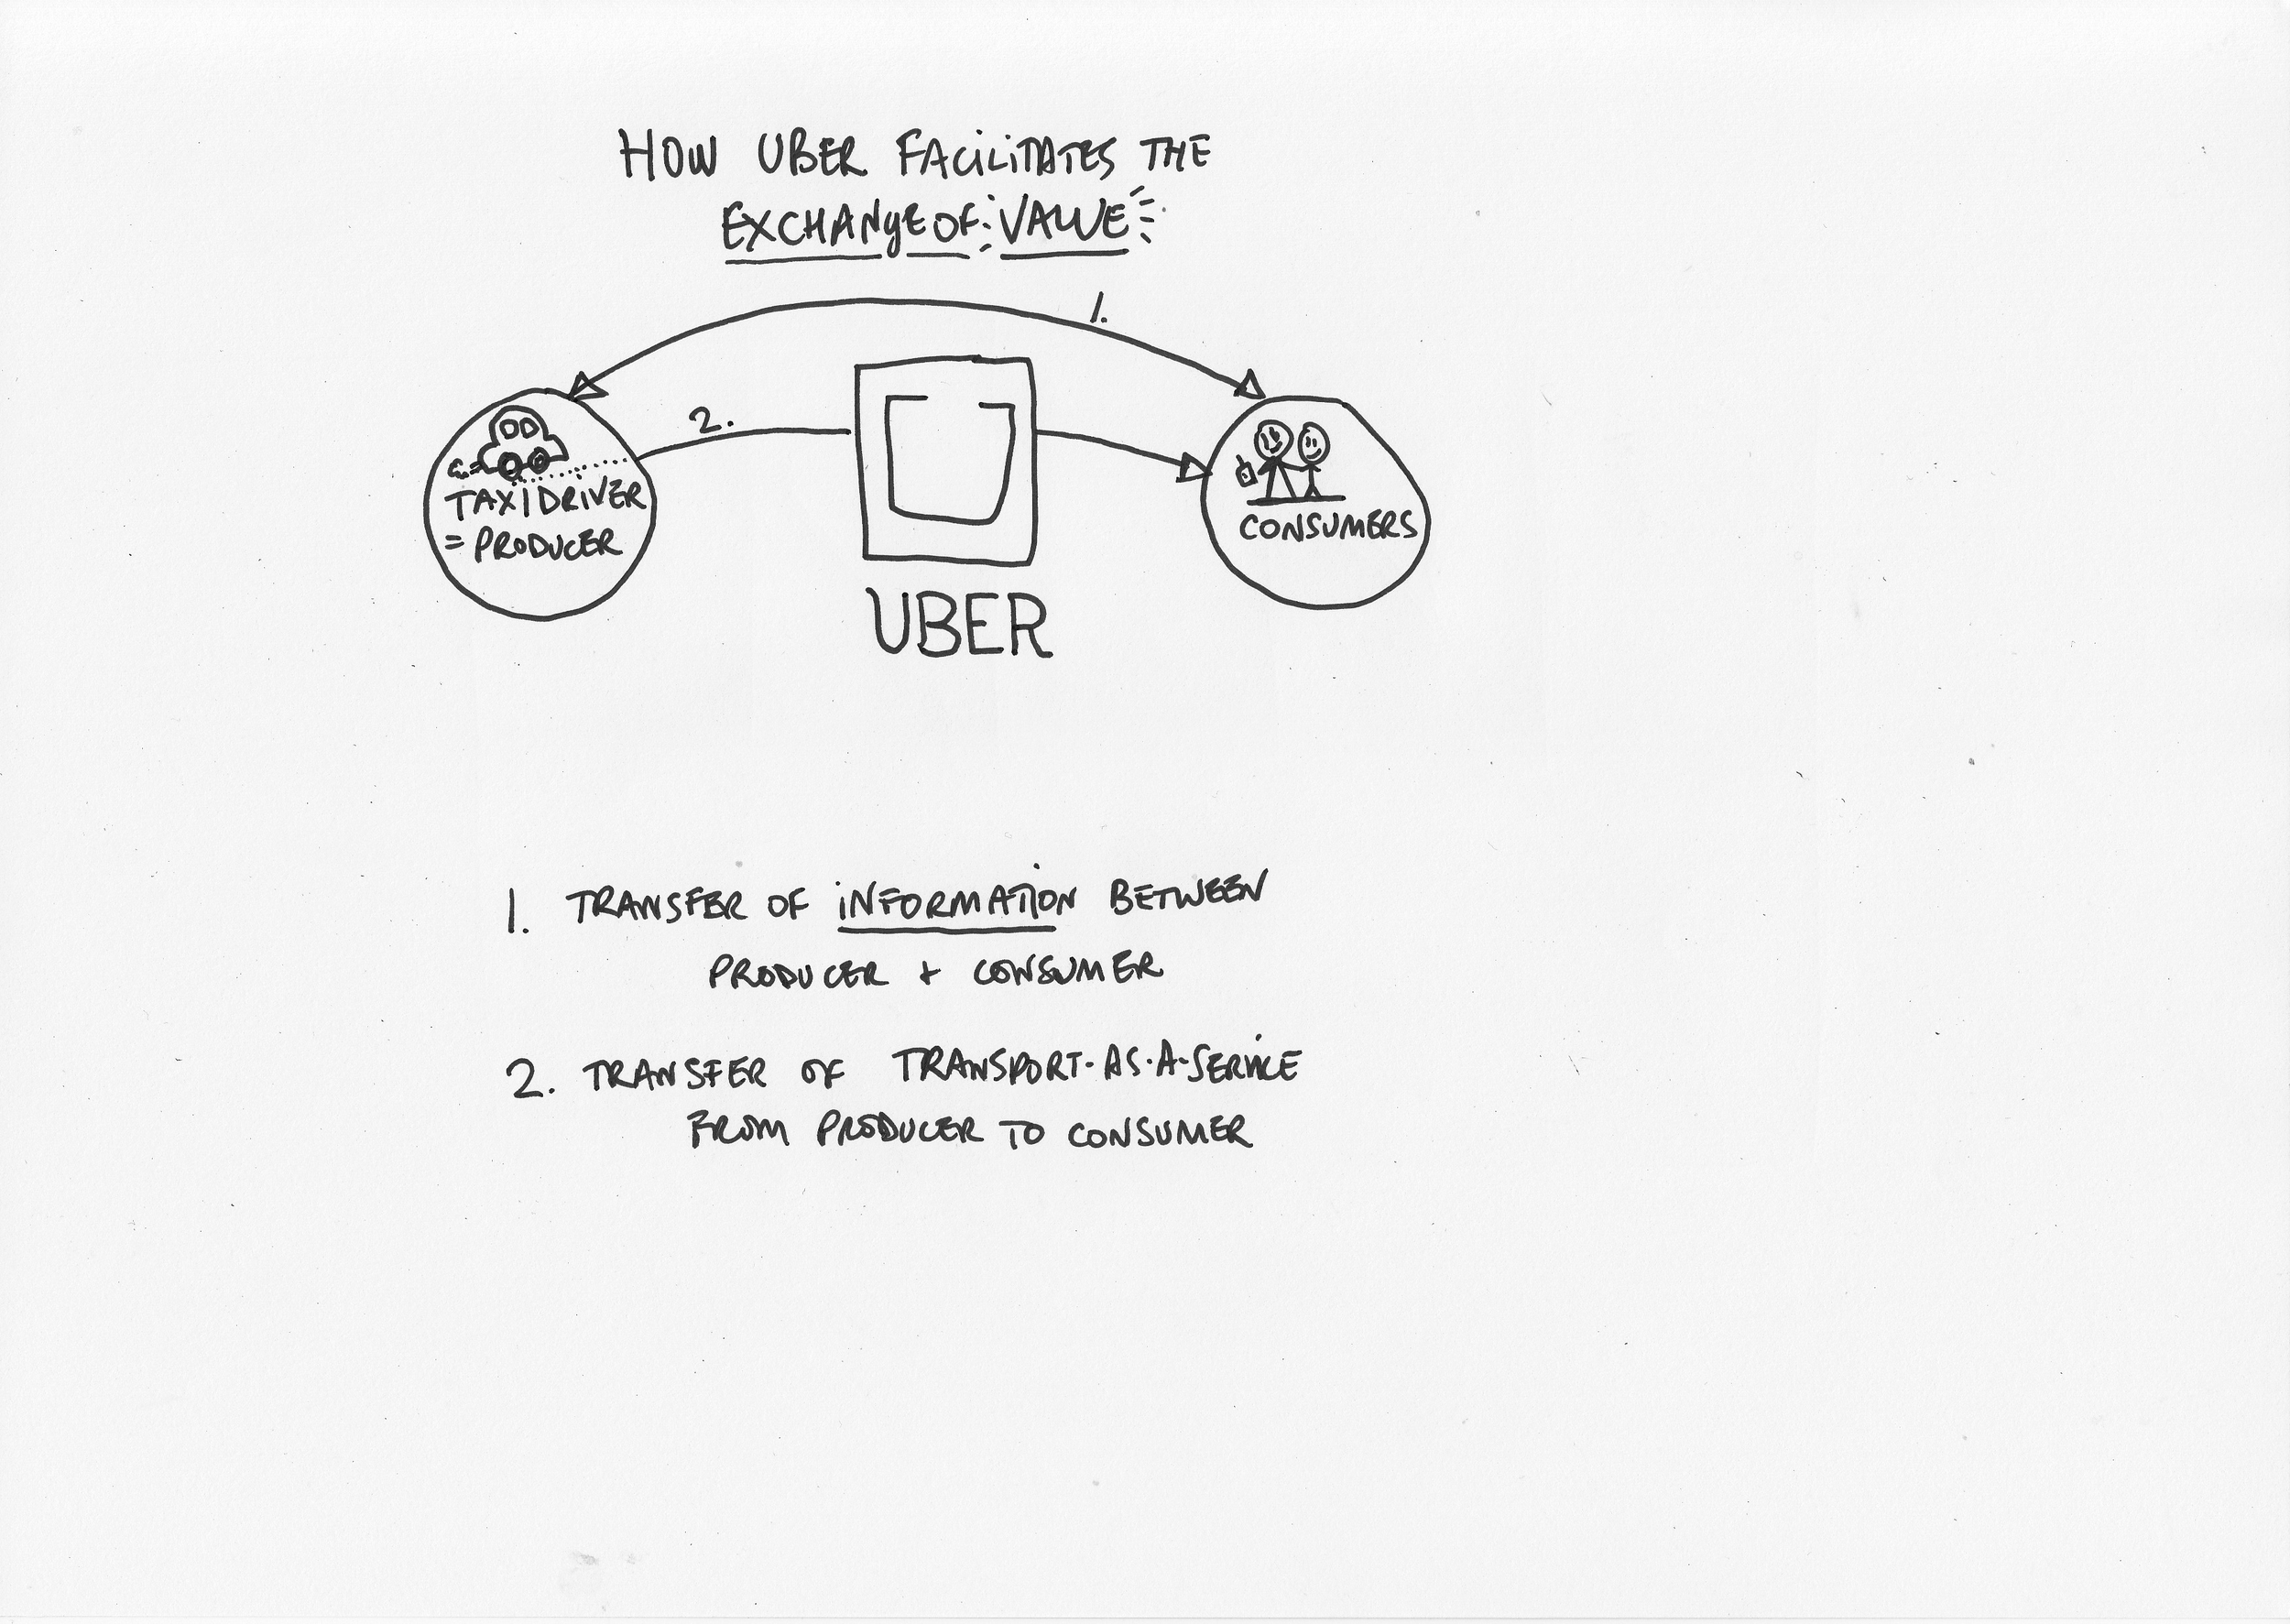 How Uber facilitates exchange of value2.jpg